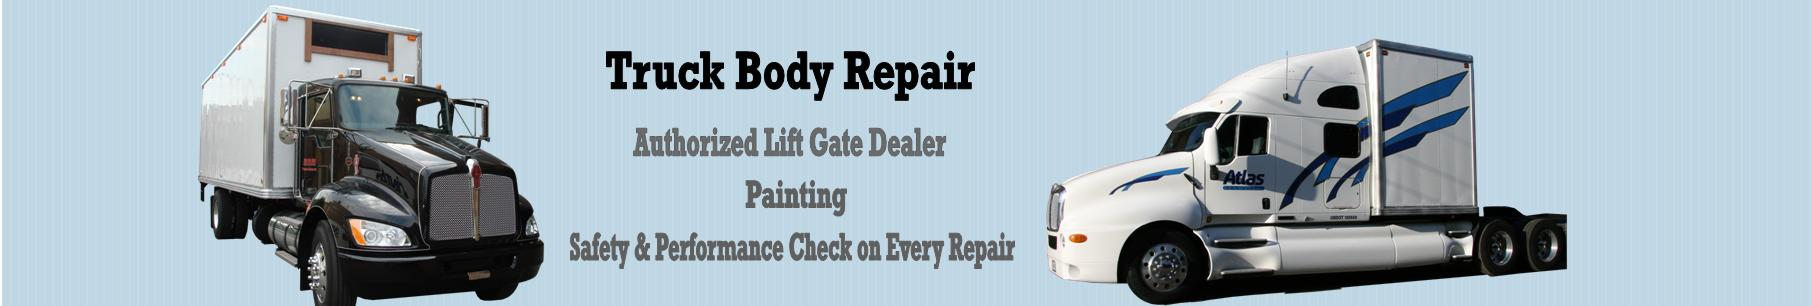 truck body repair in chicago il